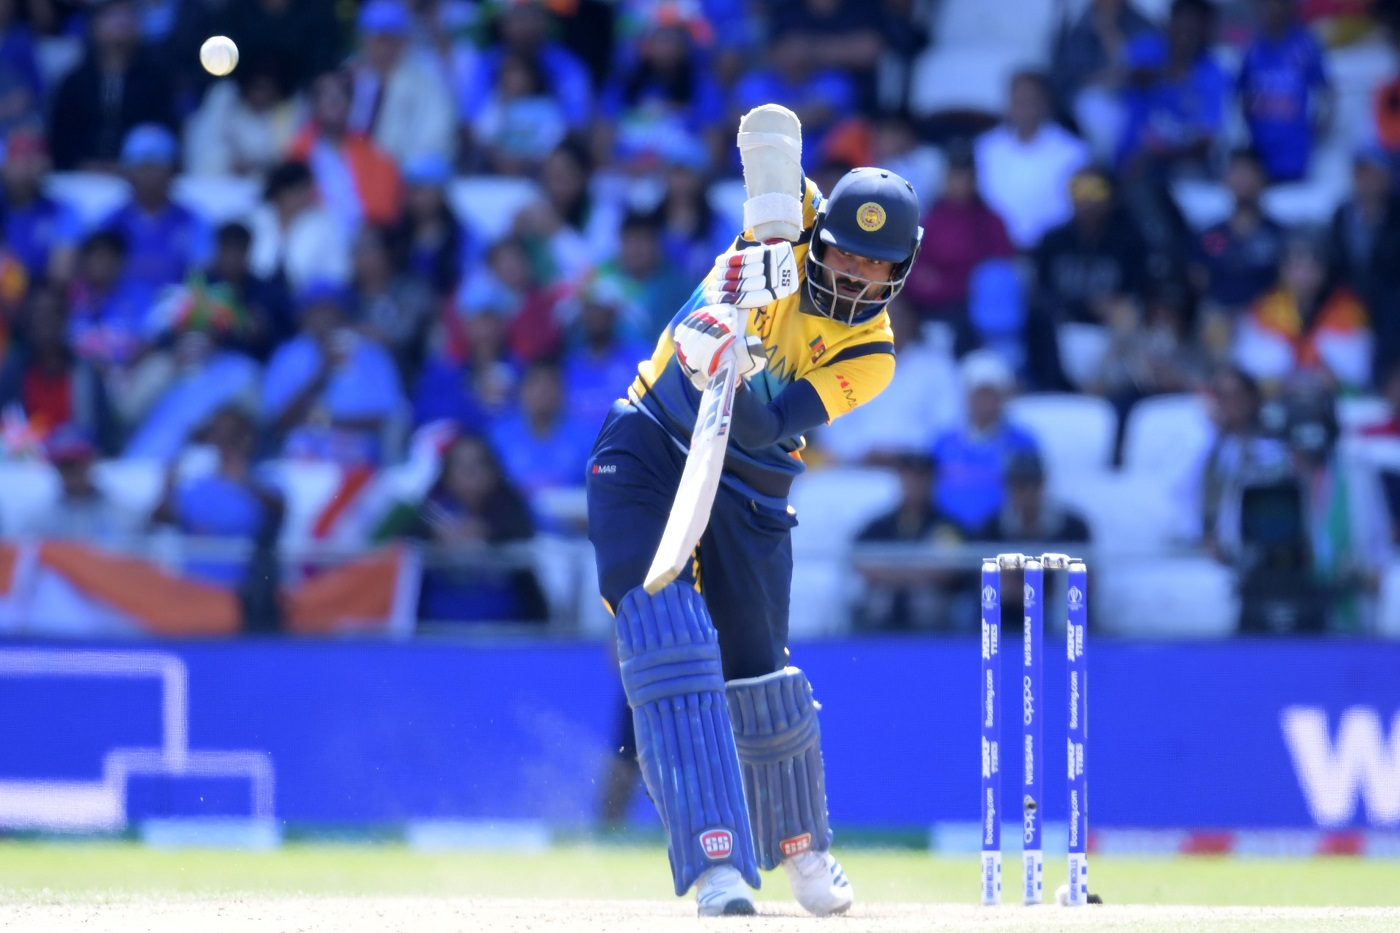 Sri Lanka announce ODI and T20I squads for Pakistan tour